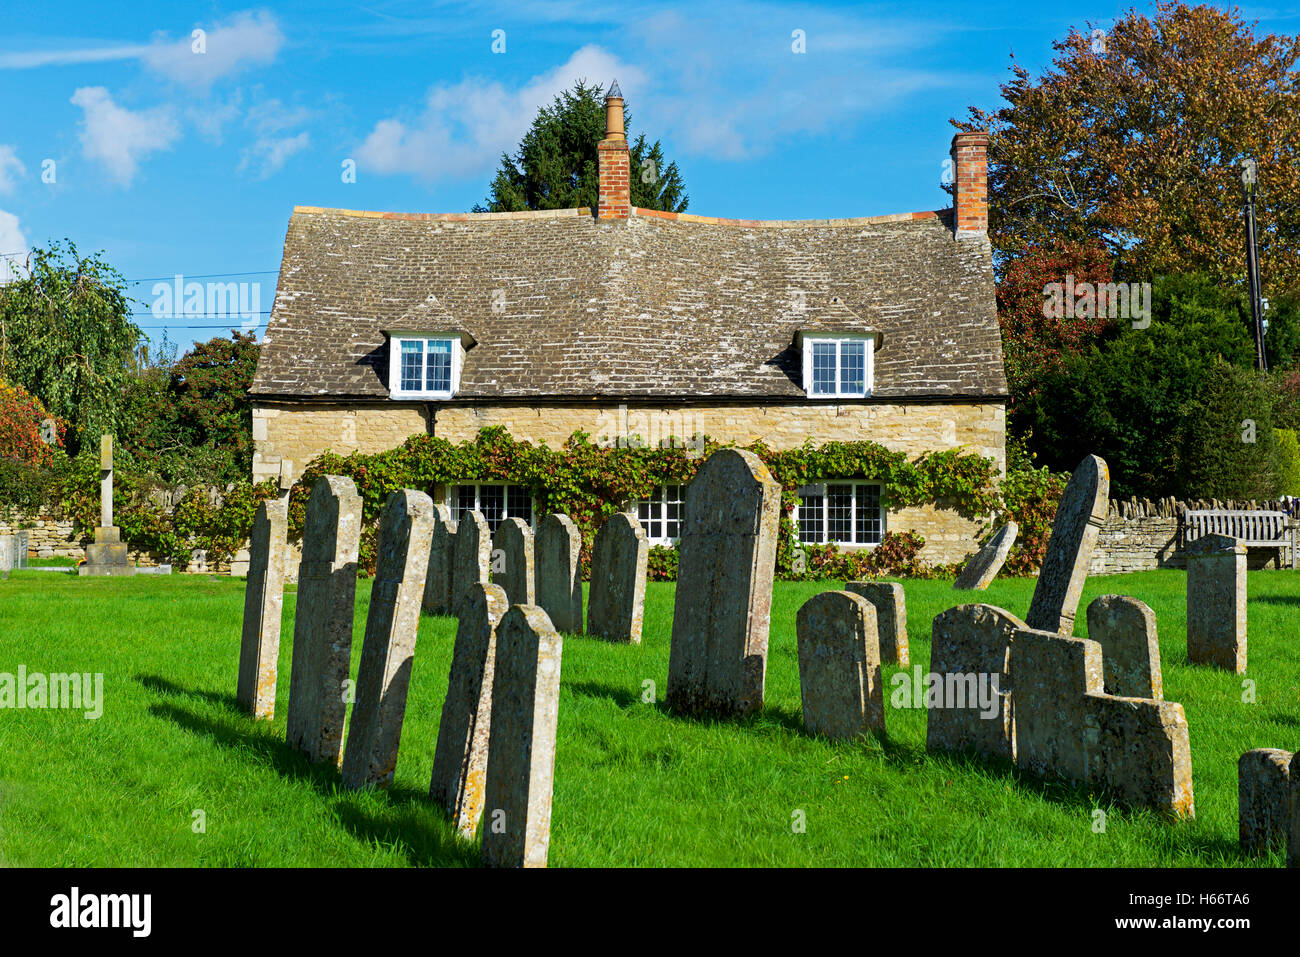 Cottage overlooking the churchyard in the village of Woodnewton, Northamptonshire, England UK - Stock Image